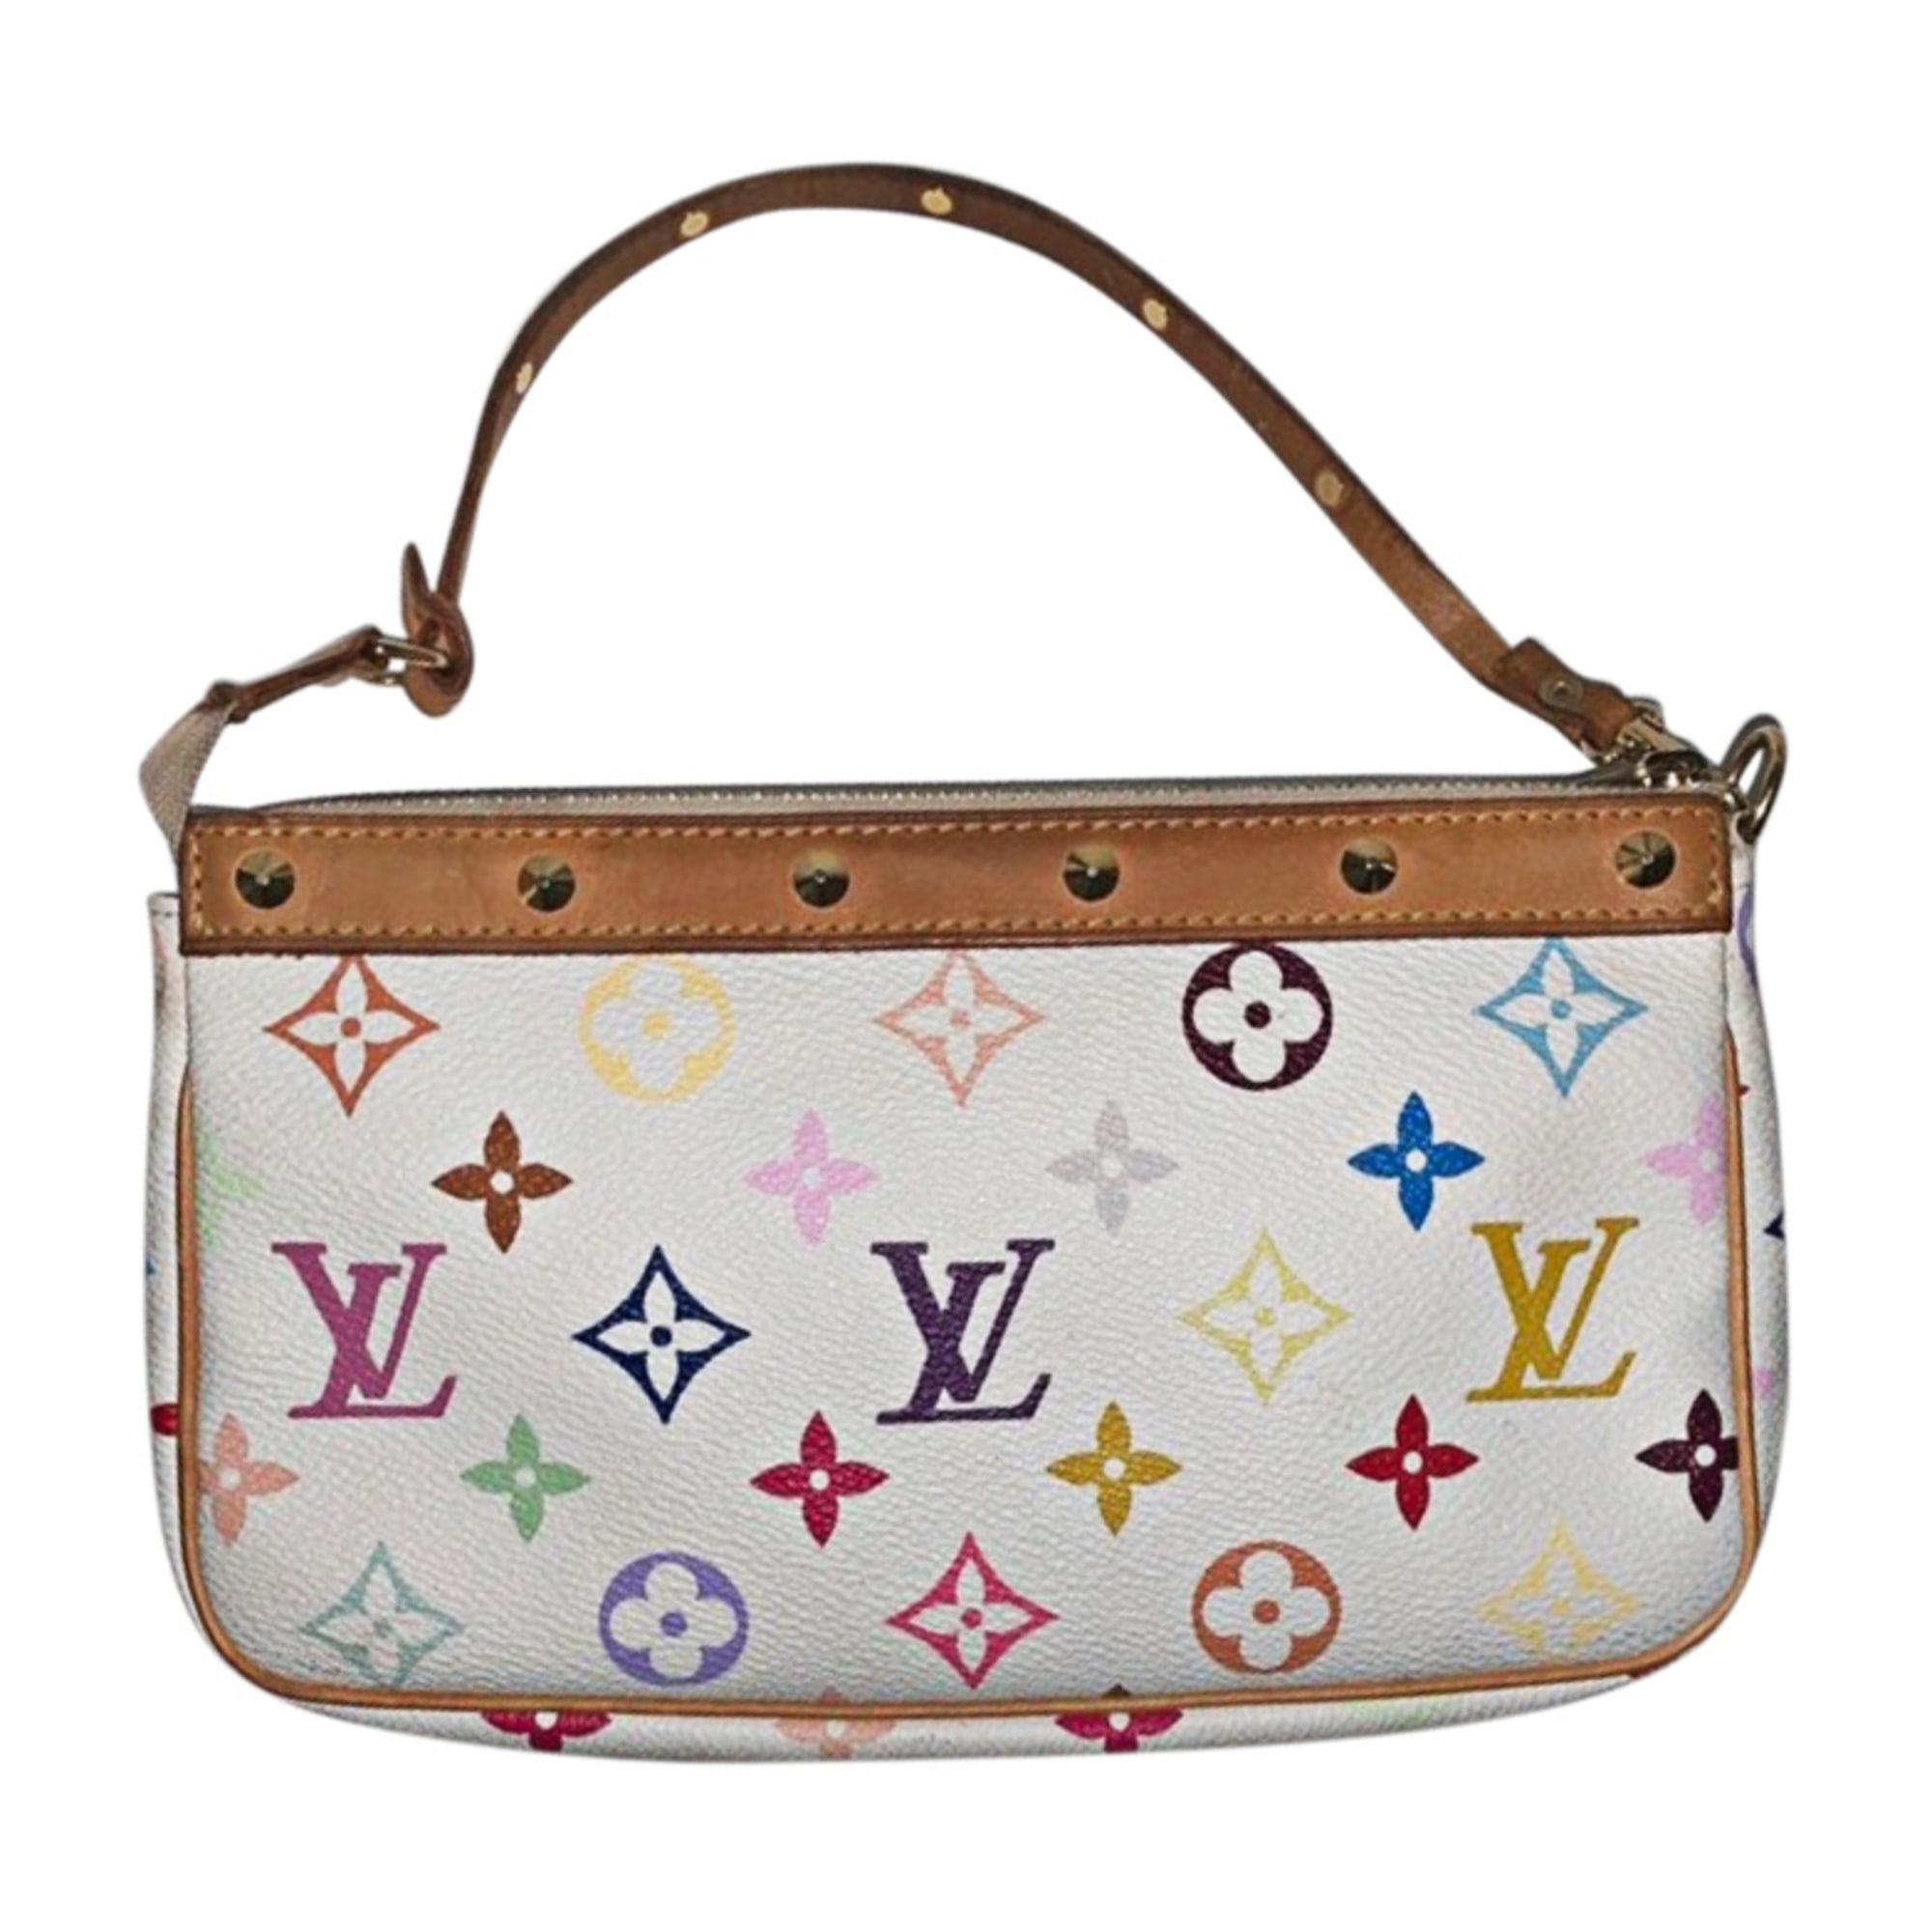 Leather Handbag LOUIS VUITTON White, off-white, ecru